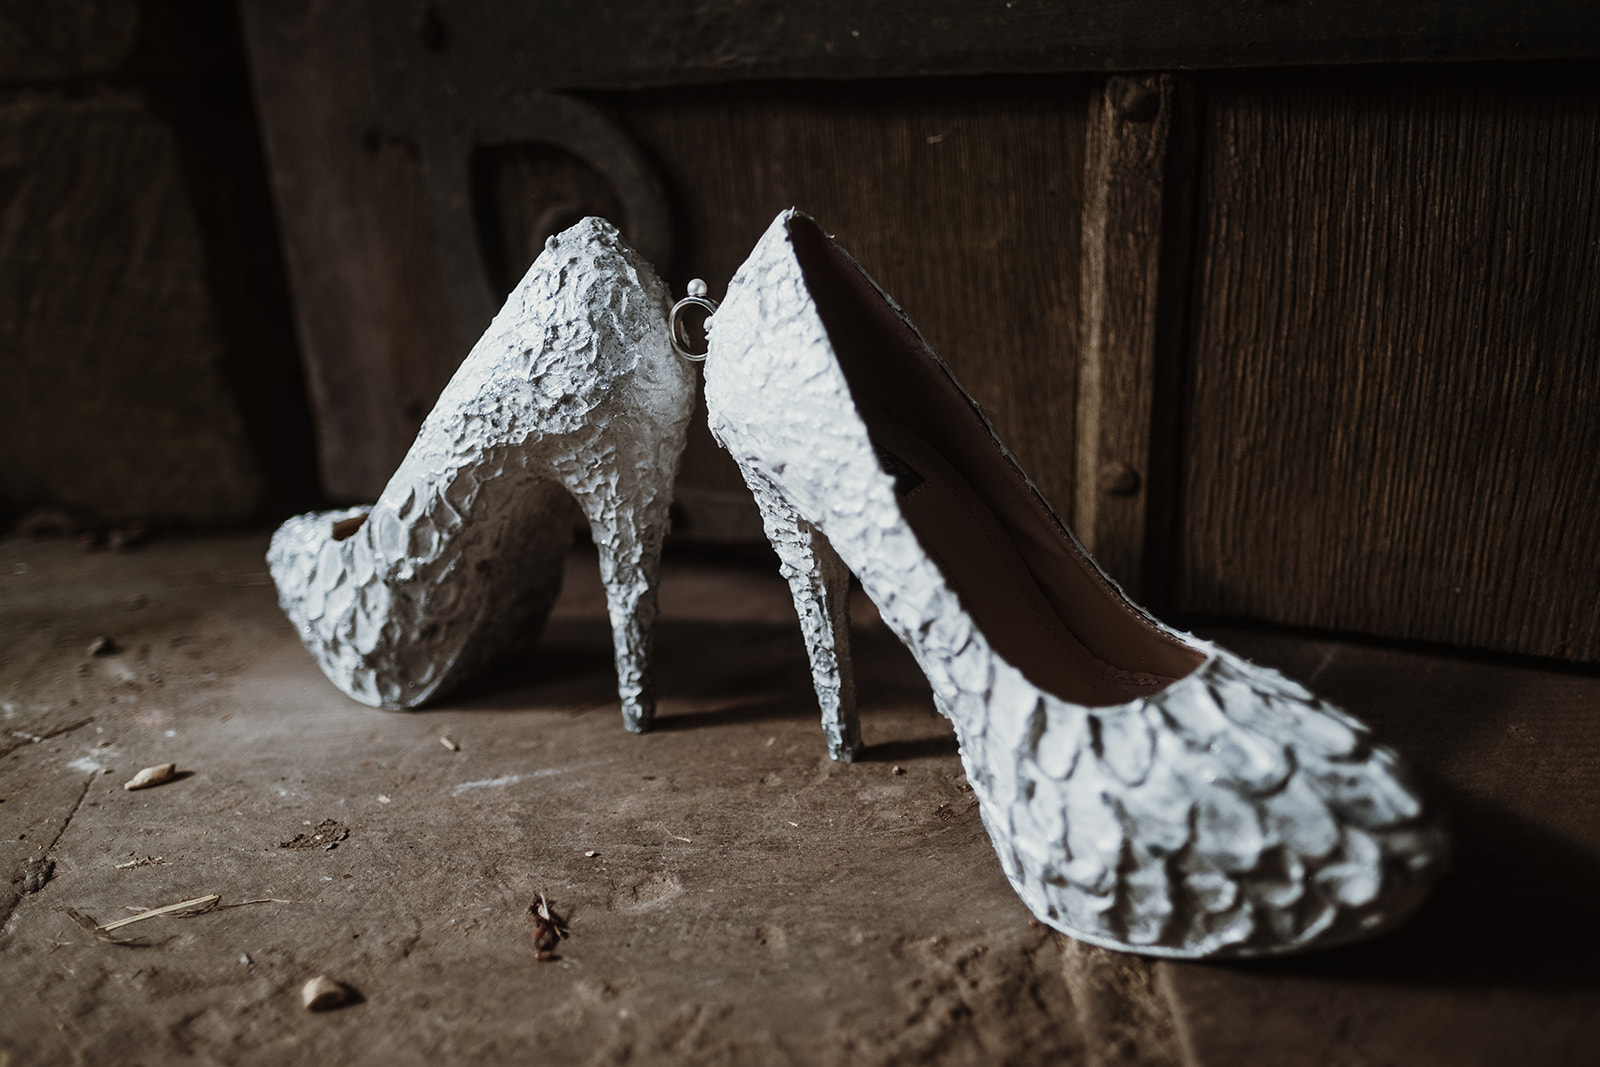 Game Of Thrones Wedding- Tom Jeavons Photography- Unconventional Wedding- Fantasy Wedding- Themed Wedding- unique wedding shoes